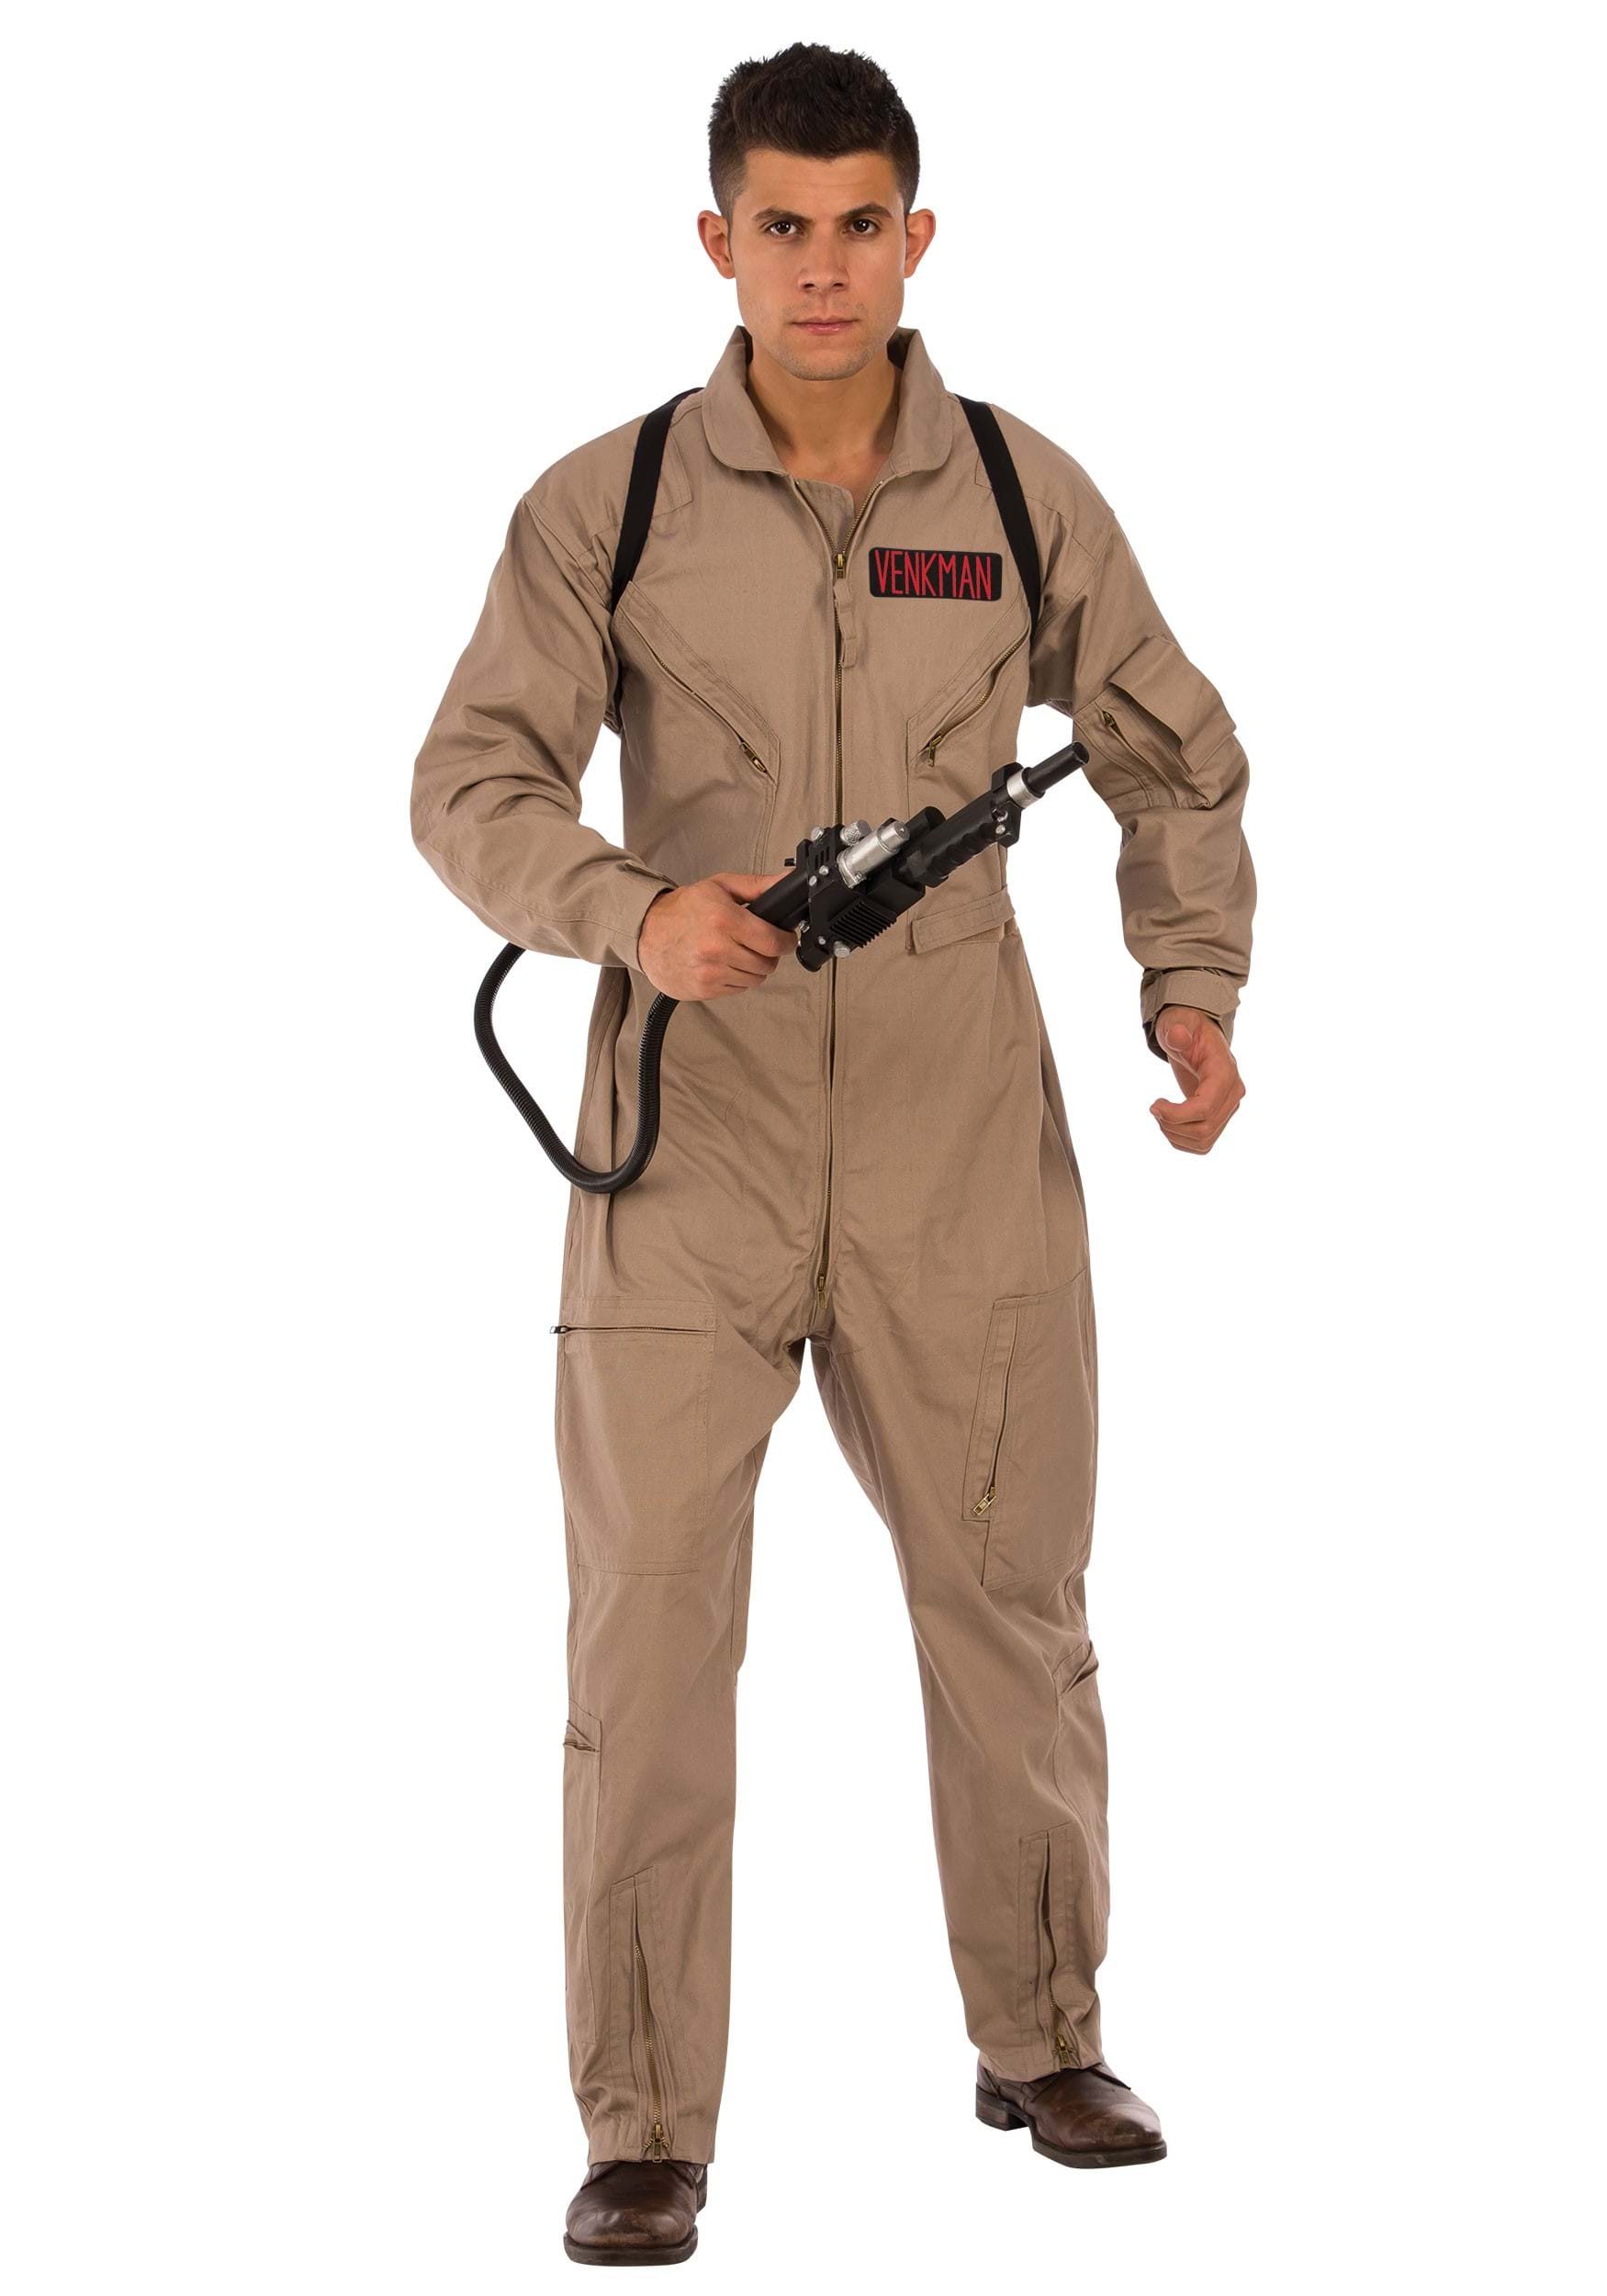 44010e405dc Ghostbusters Grand Heritage Costume for Men